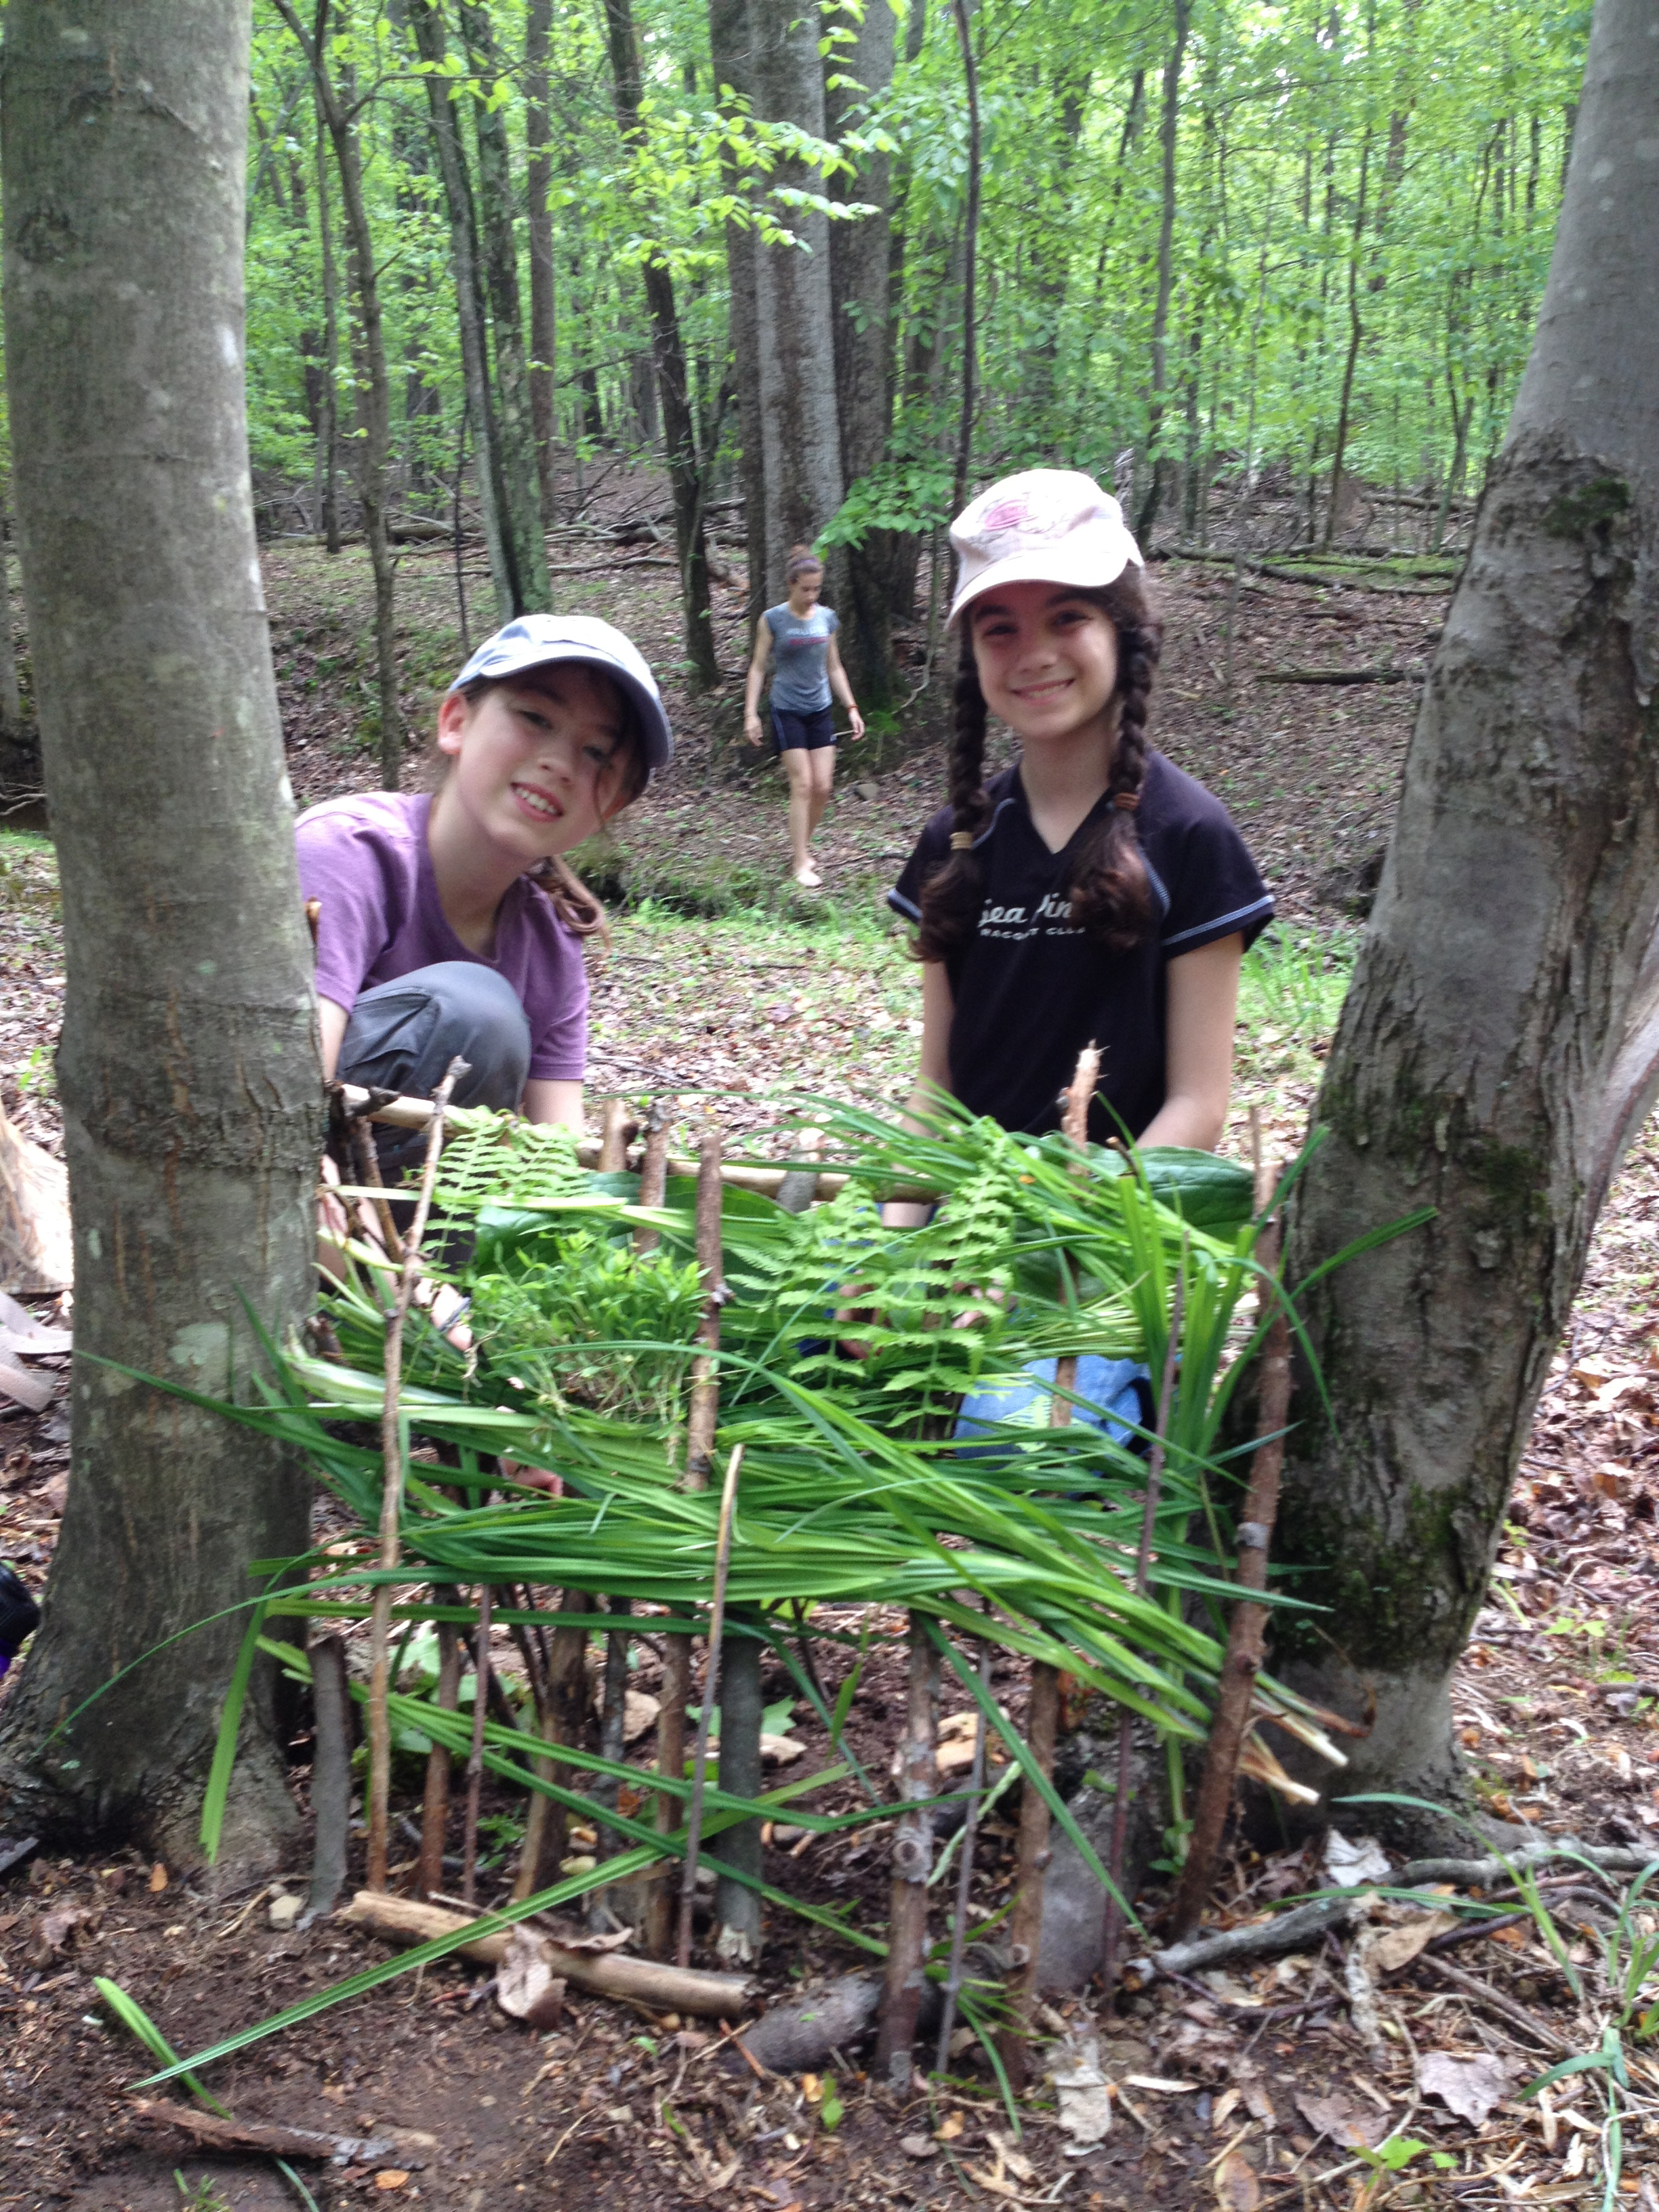 Rolling Ridge is a learning ground for kids and adults to connect with nature via community programs and naturalist classes. Photo courtesy of Linda DeGraf.